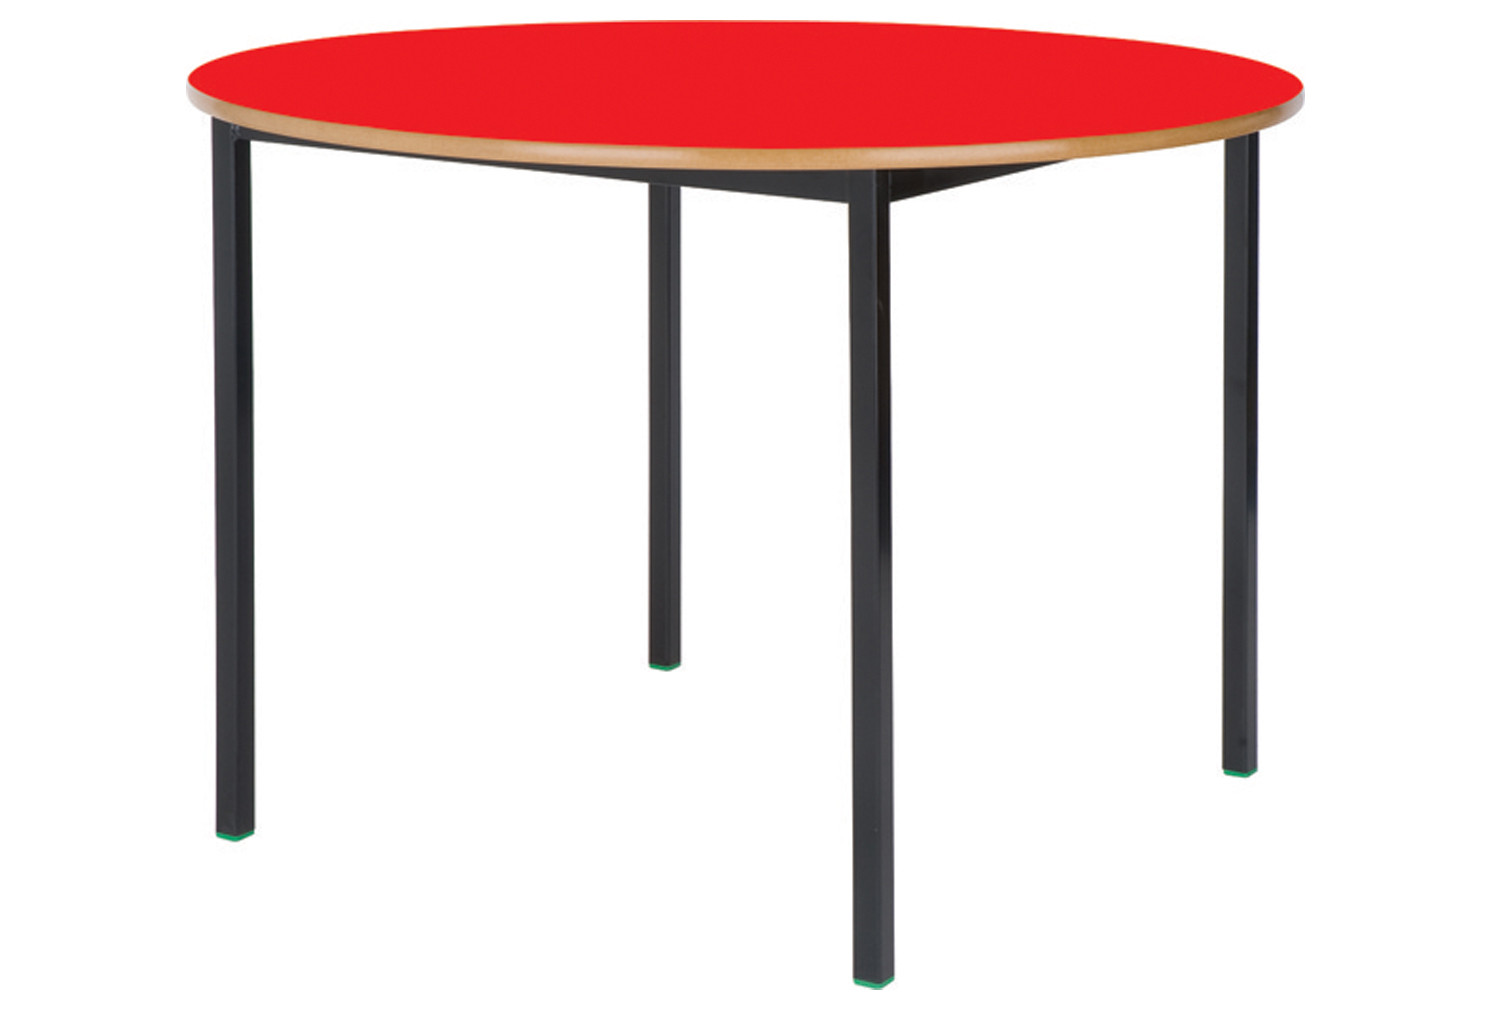 Circular Fully Welded Classroom Tables 14+ Years